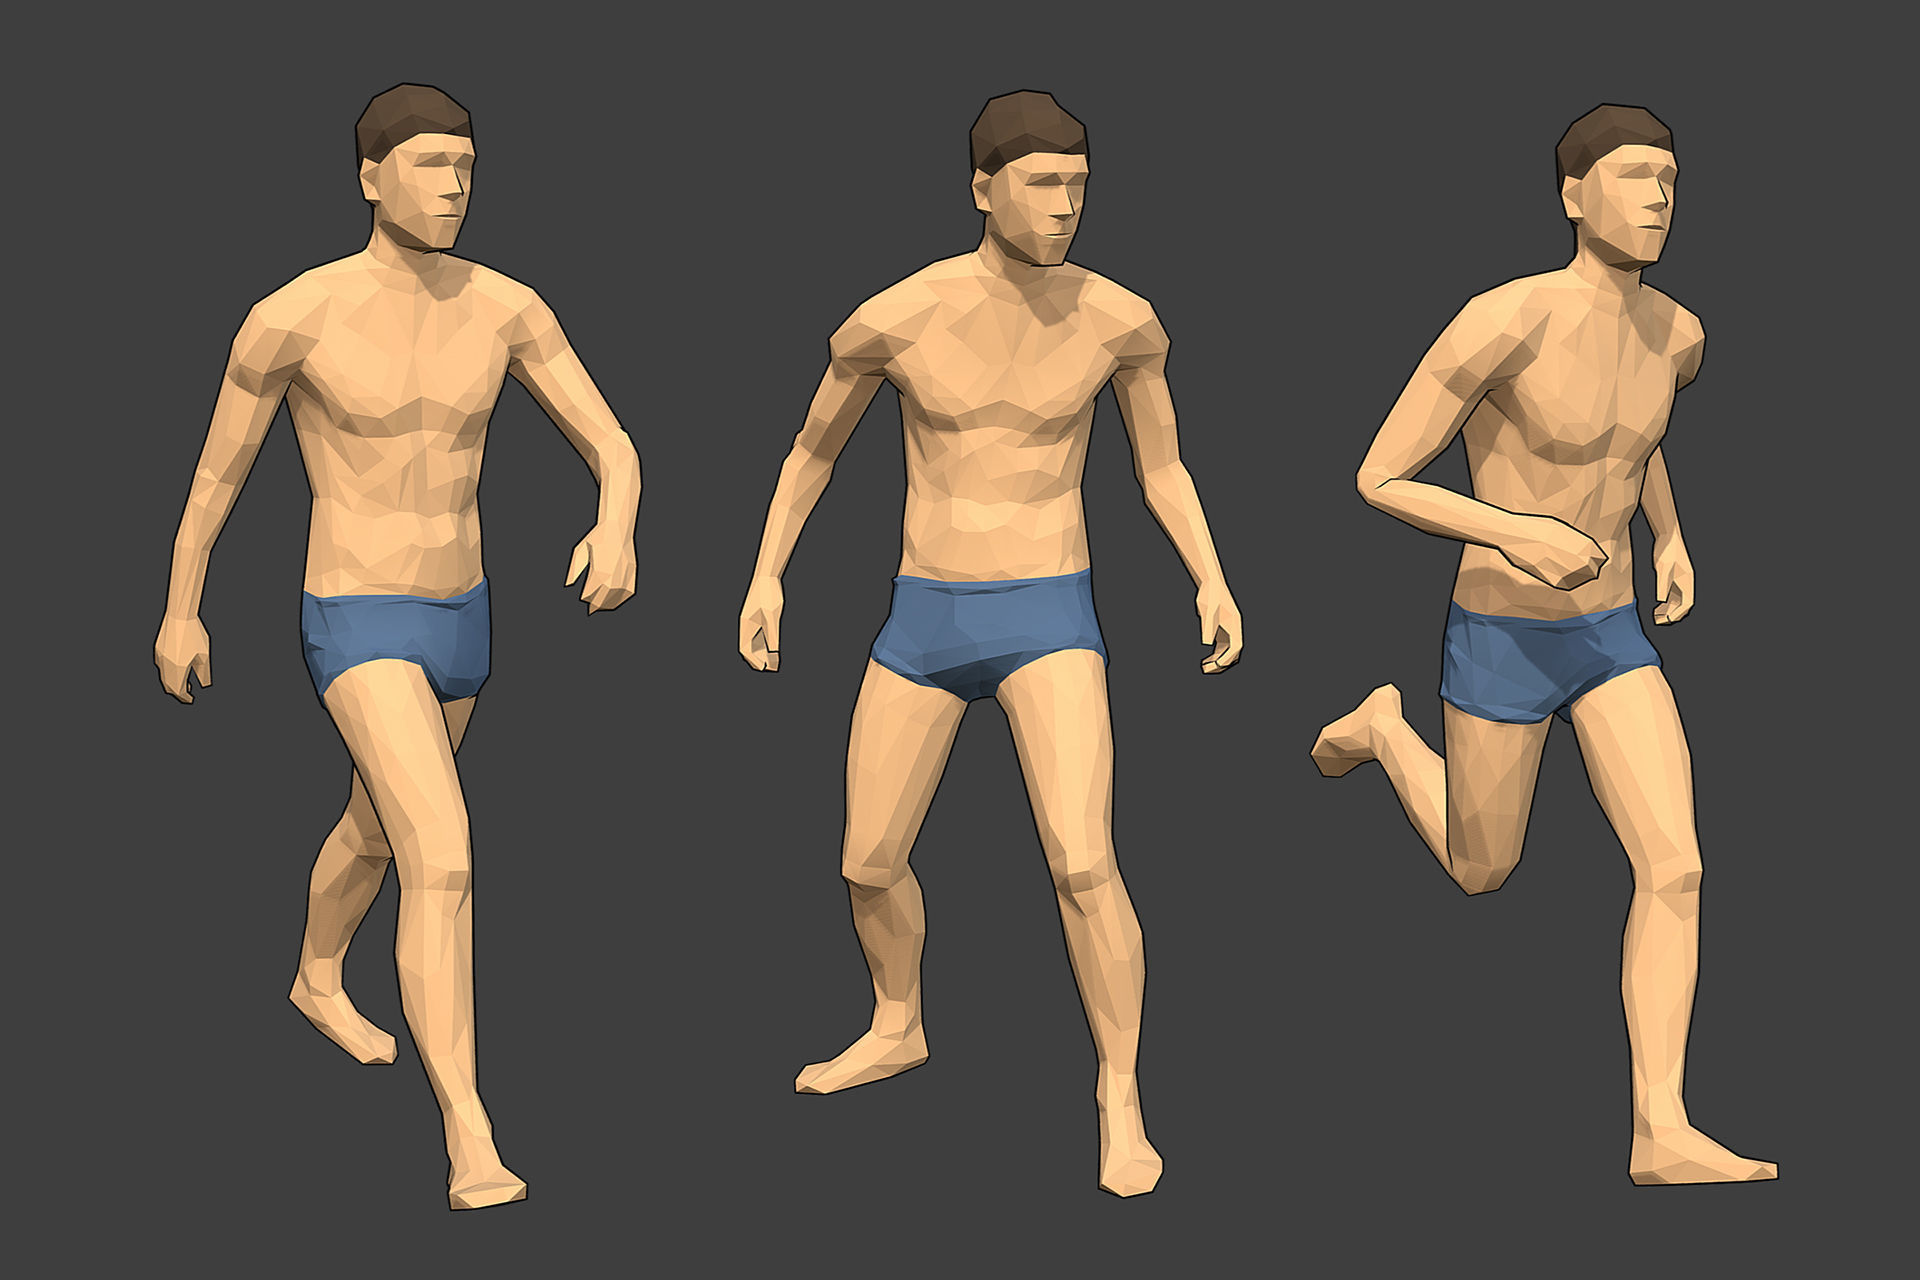 Rigged Lowpoly Male Character - Jim